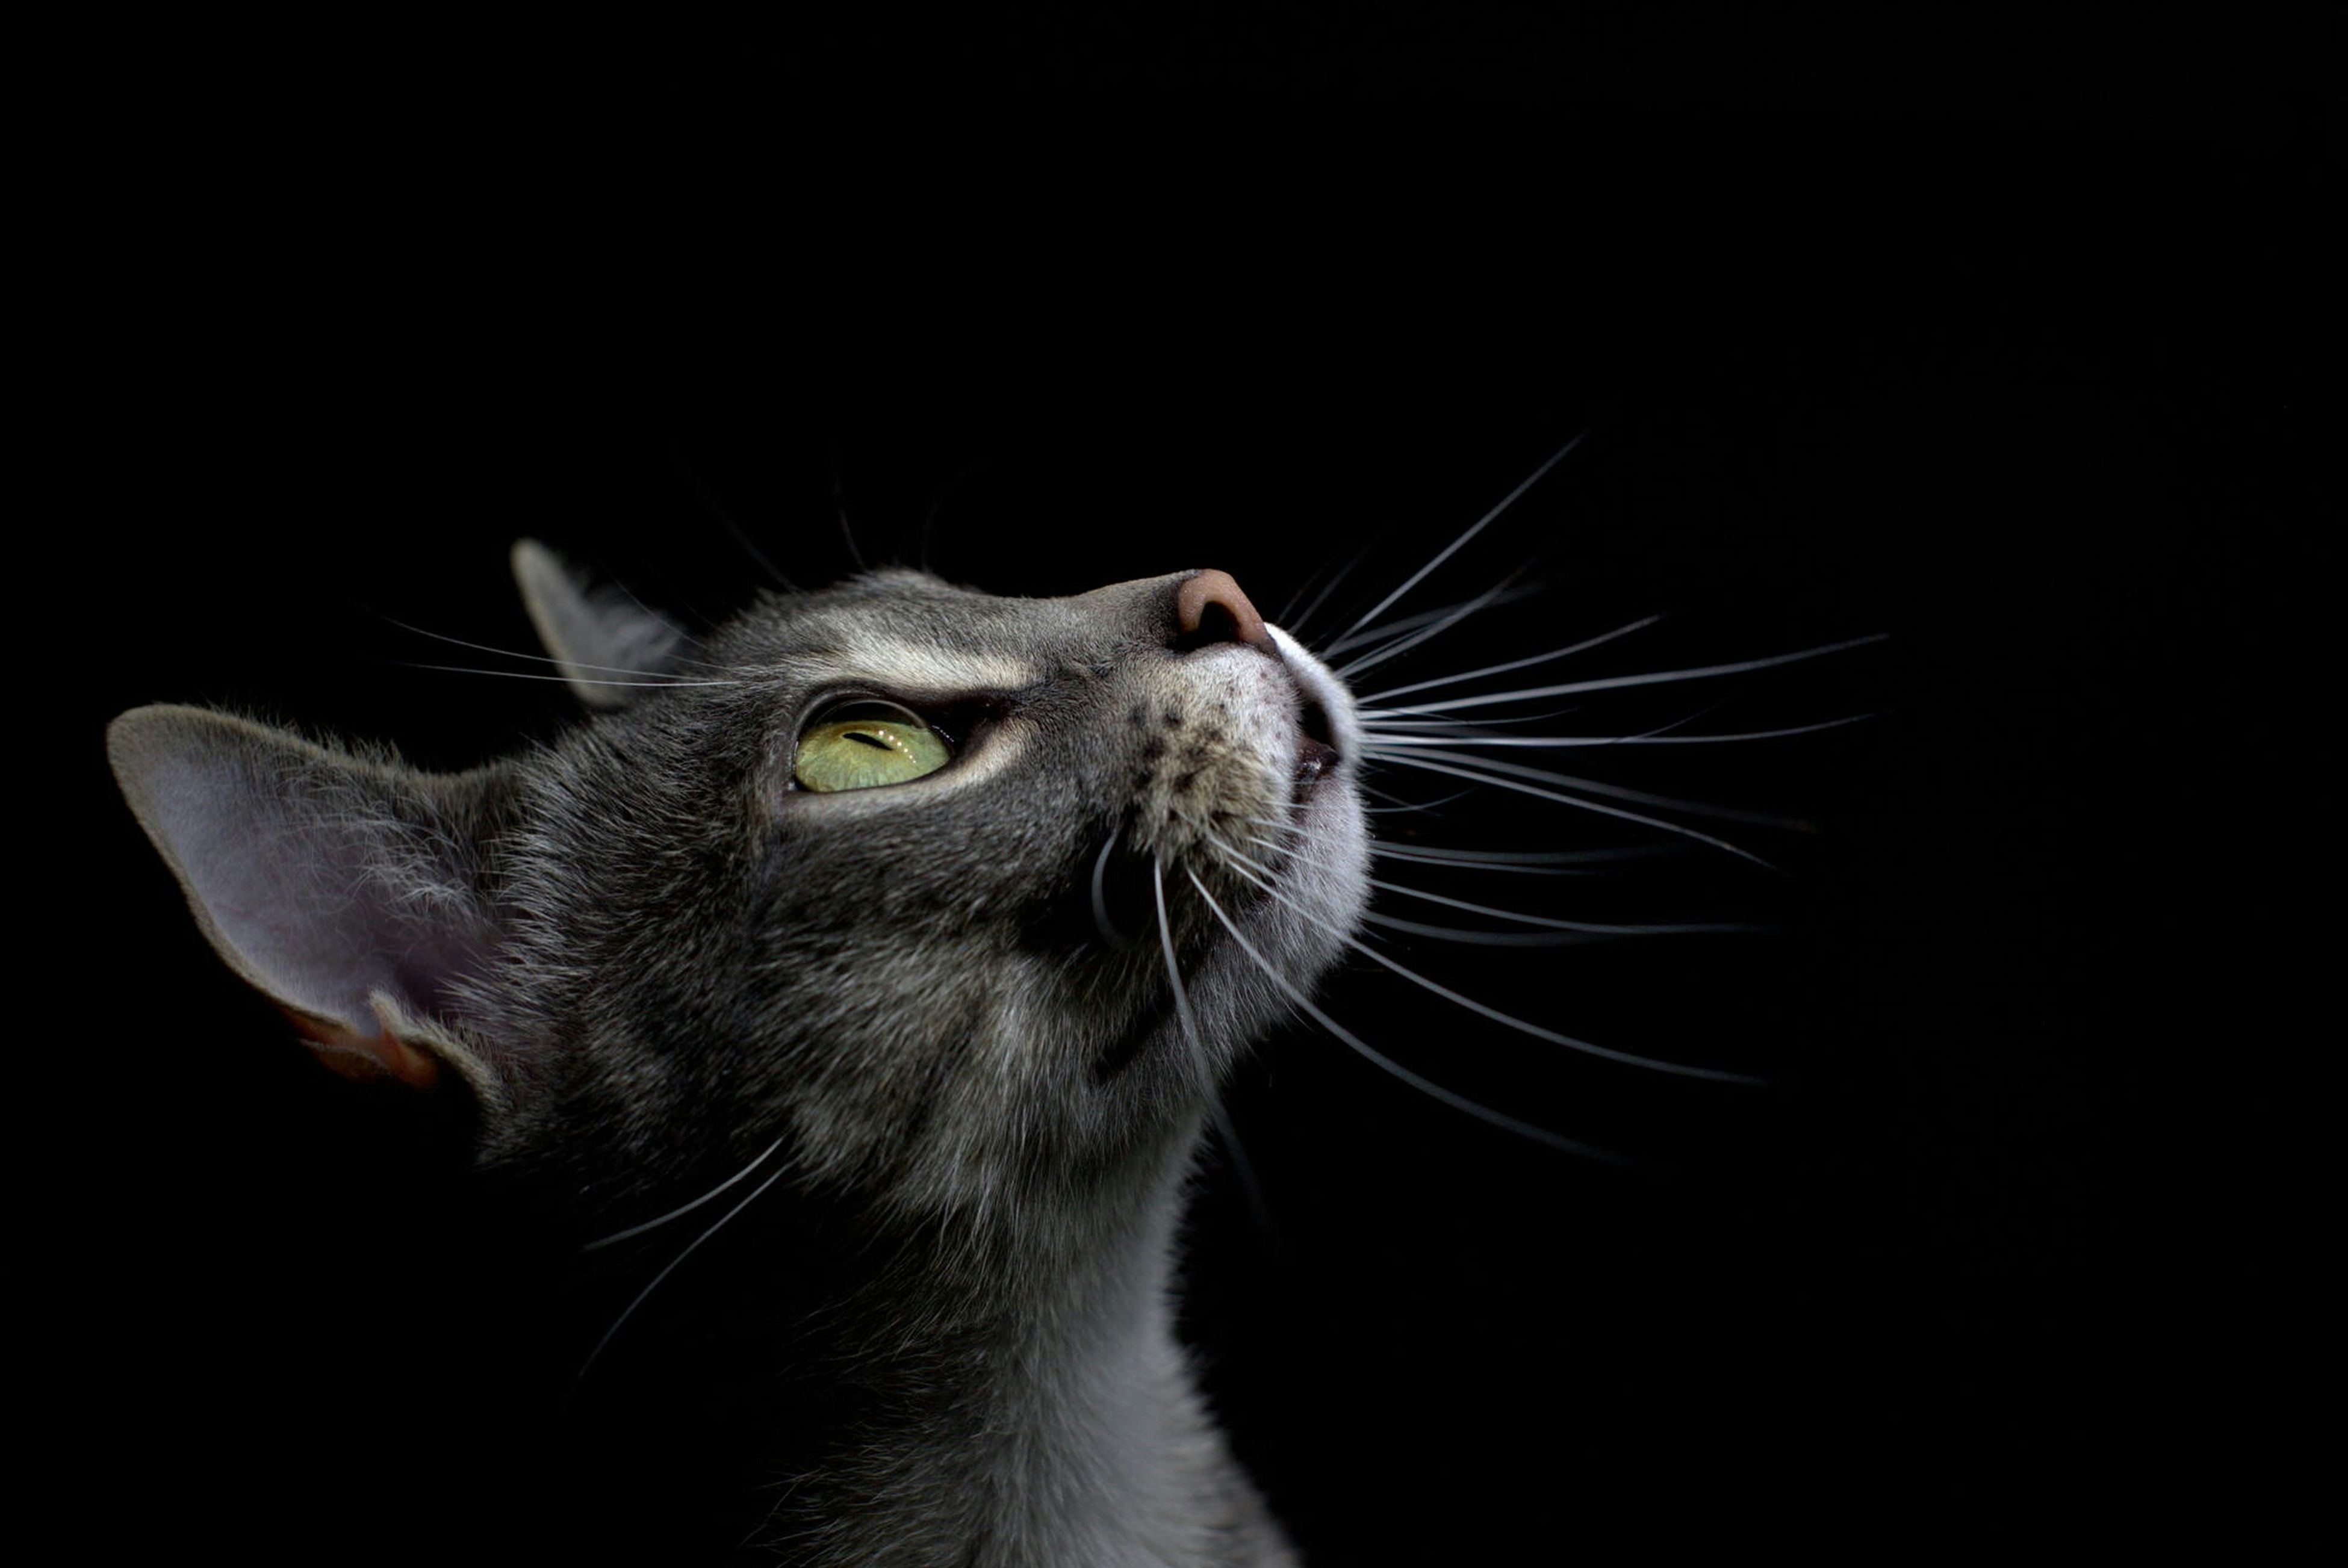 one animal, domestic cat, animal themes, mammal, domestic animals, cat, feline, pets, whisker, animal head, close-up, animal body part, looking away, black background, copy space, studio shot, part of, focus on foreground, side view, animal eye